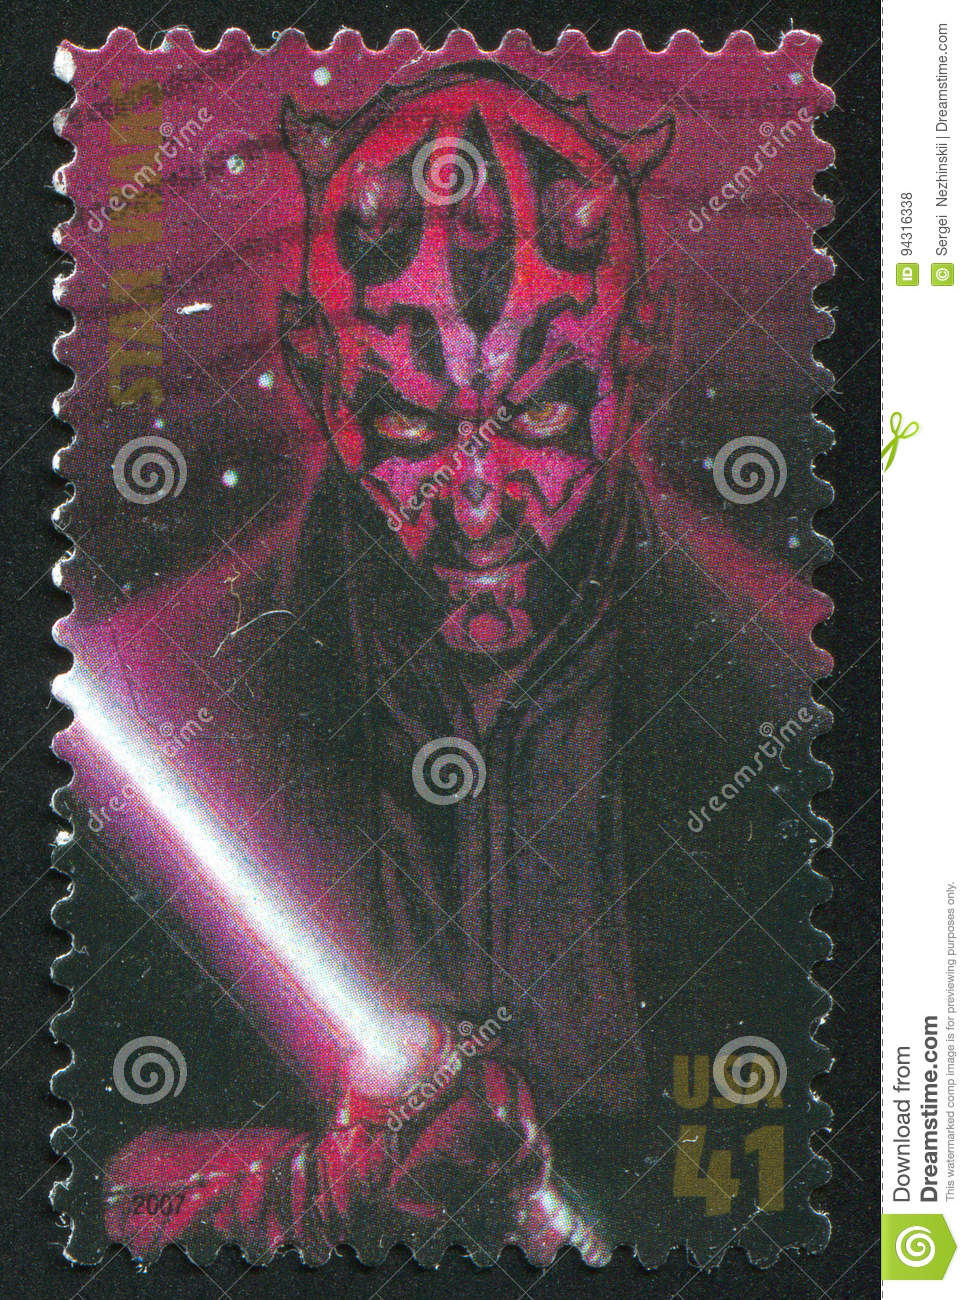 Star Wars editorial stock photo  Image of character